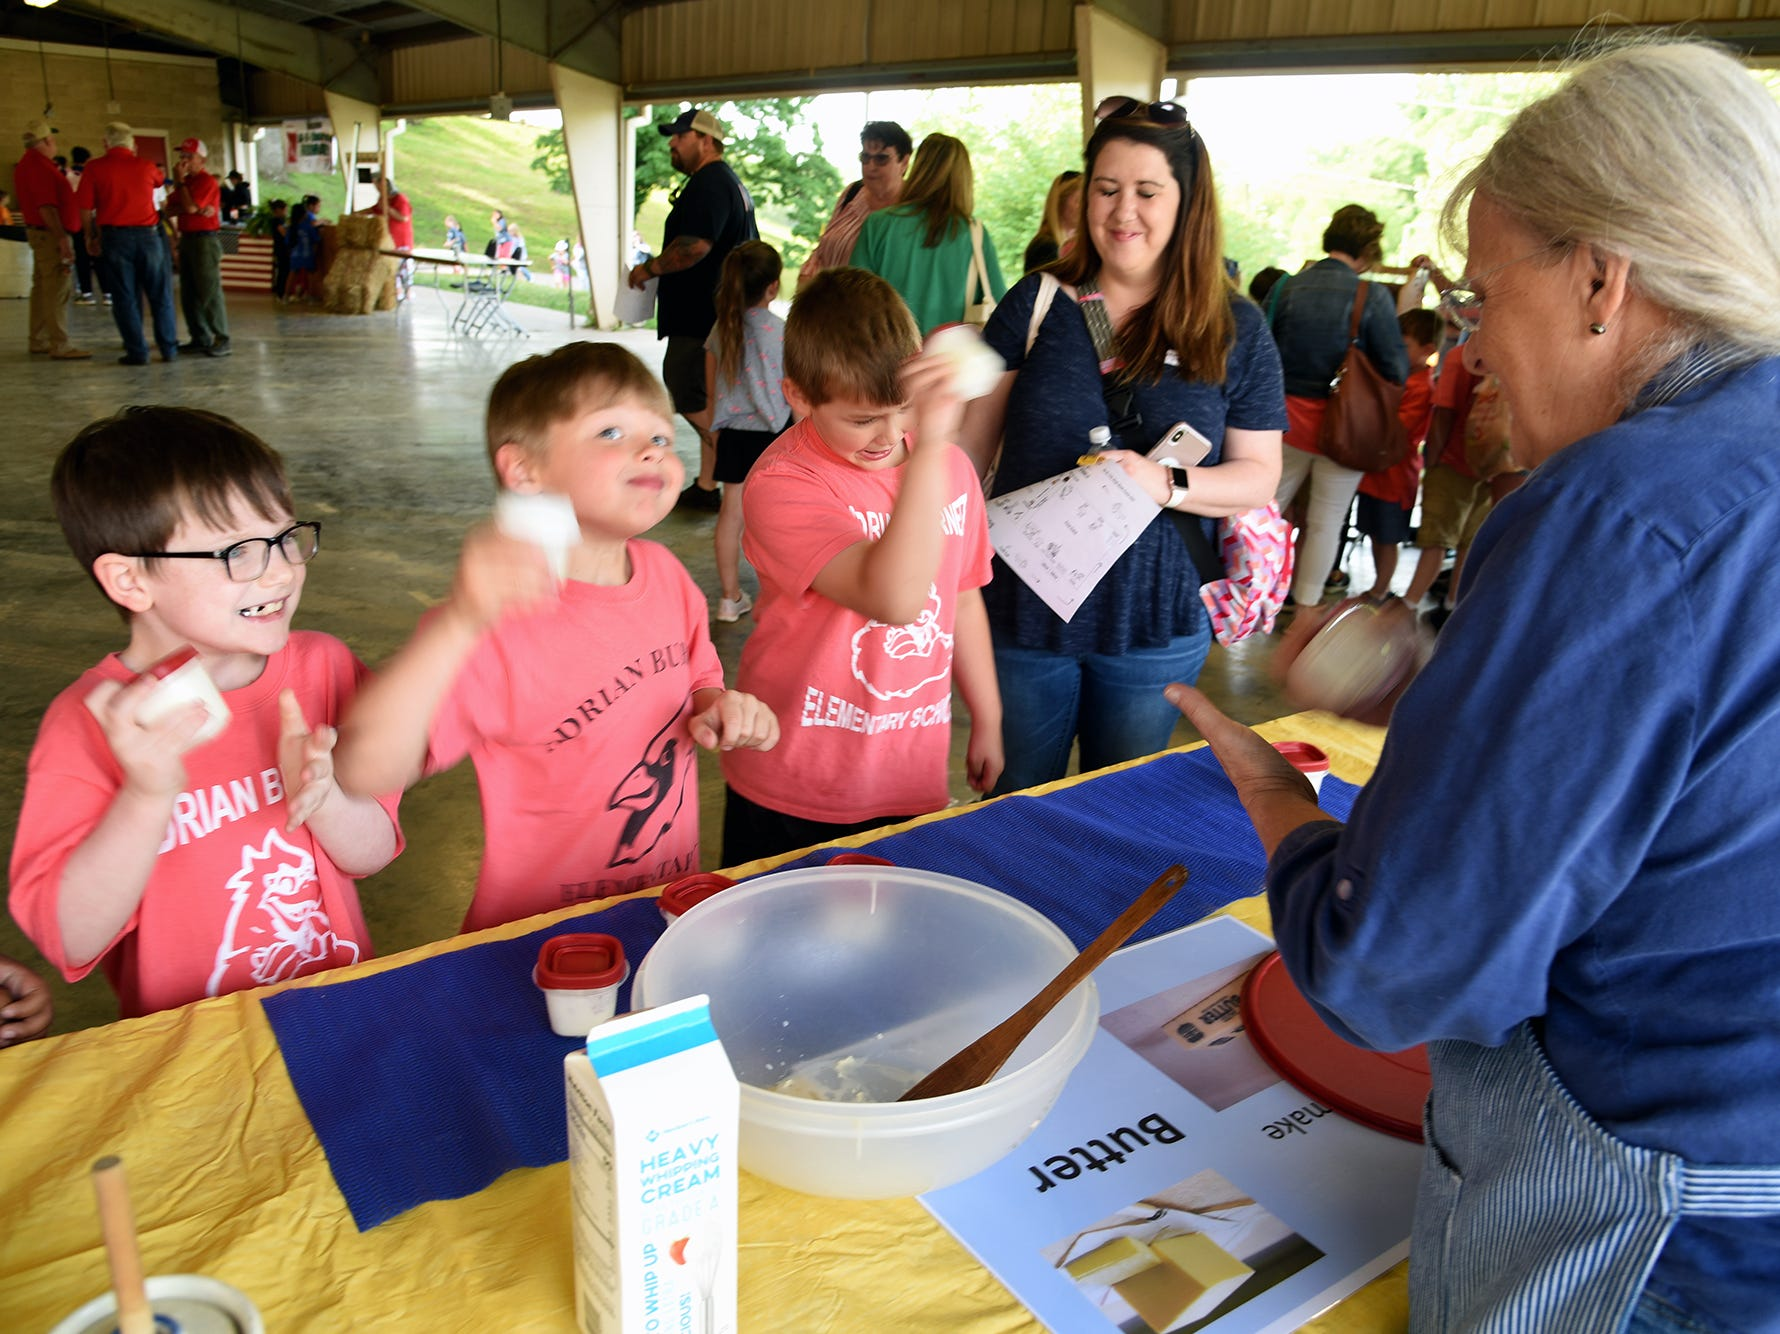 Ann Crawford, right. directs Andarian Burnitt students Cody Britt, Colton Graves, and Brayden Johnson in a butter making demonstration. Over 600 Knox County School children attended the annual Knox County Farm Bureau Ag in the Classroom Farm Day at Chilhowee Park Tuesday, May 7, 2019.